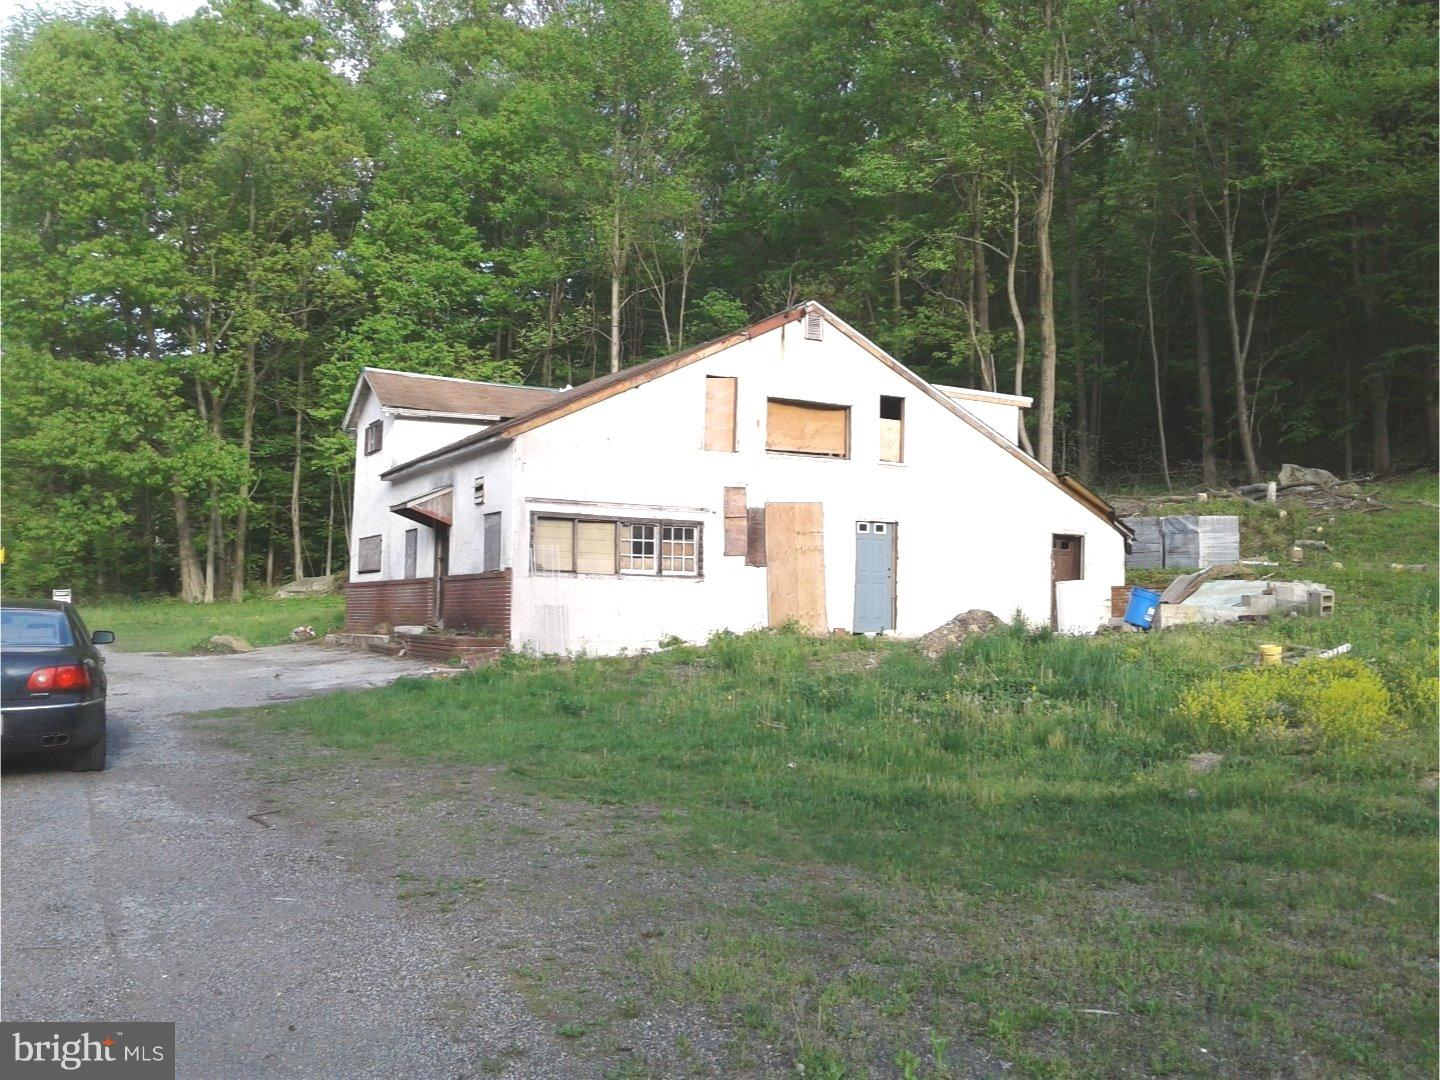 2020 Pottstown Pike Chester Springs, PA 19475